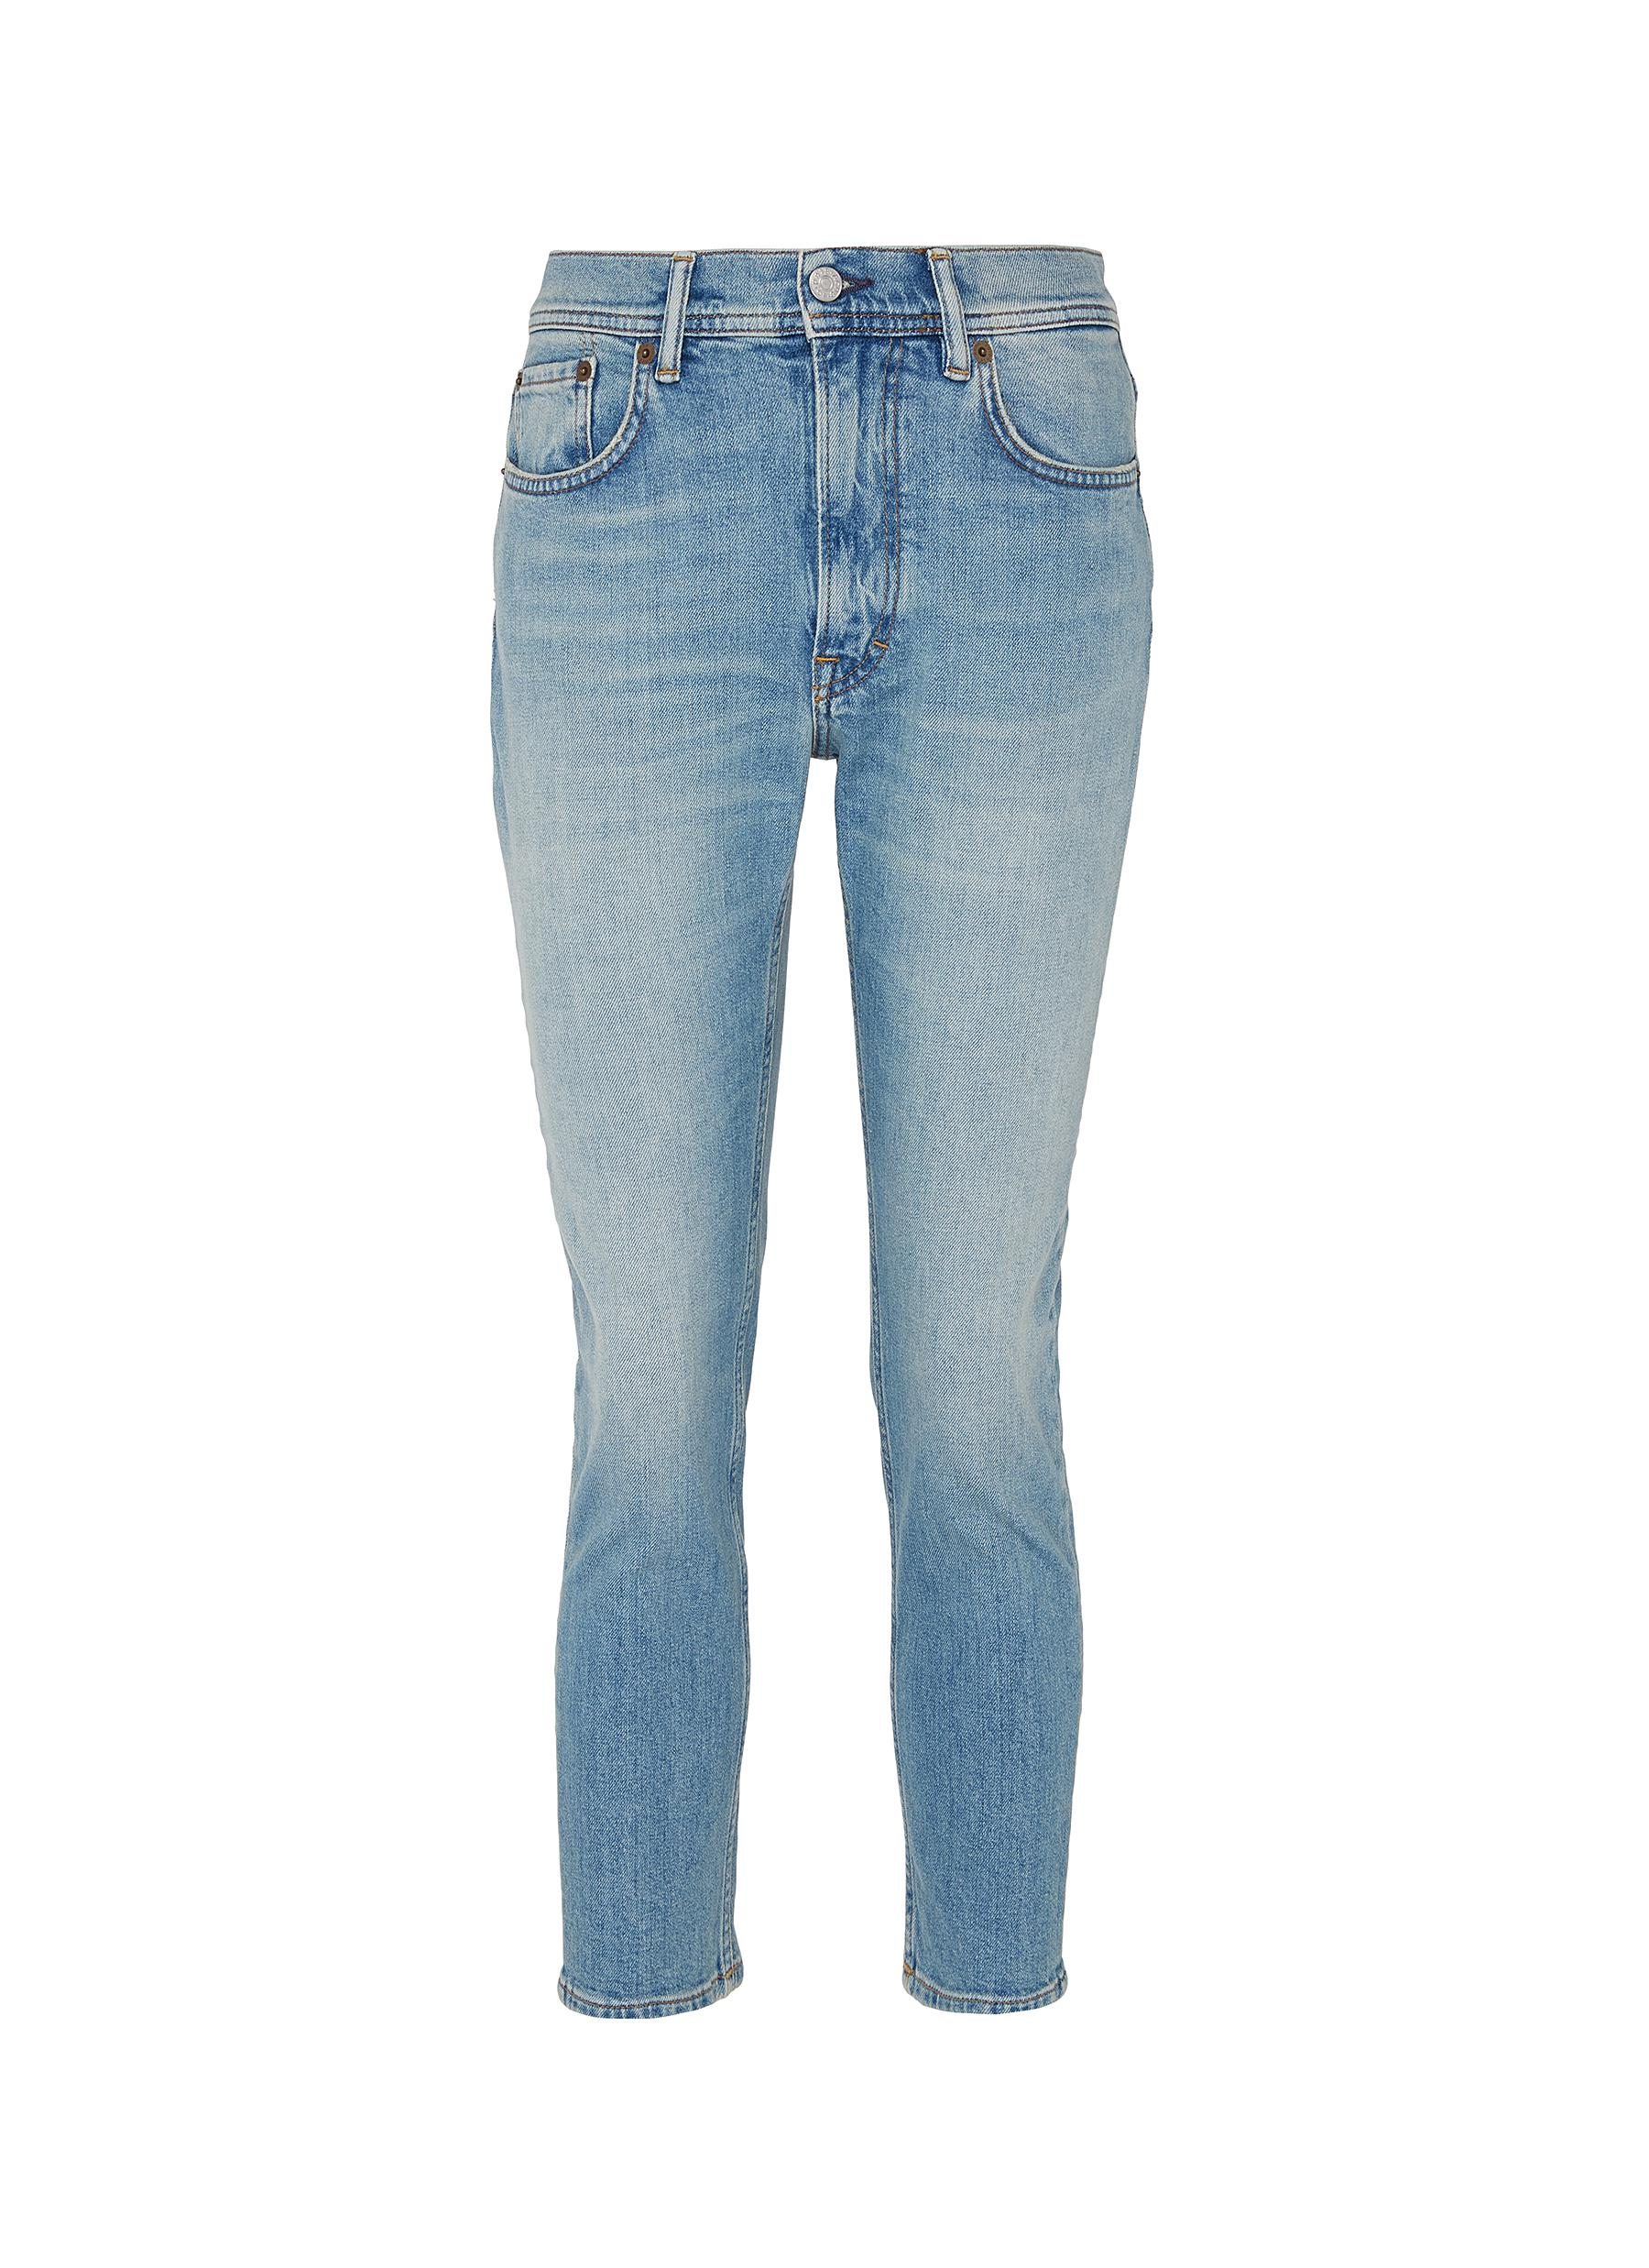 Tapered leg jeans by Acne Studios